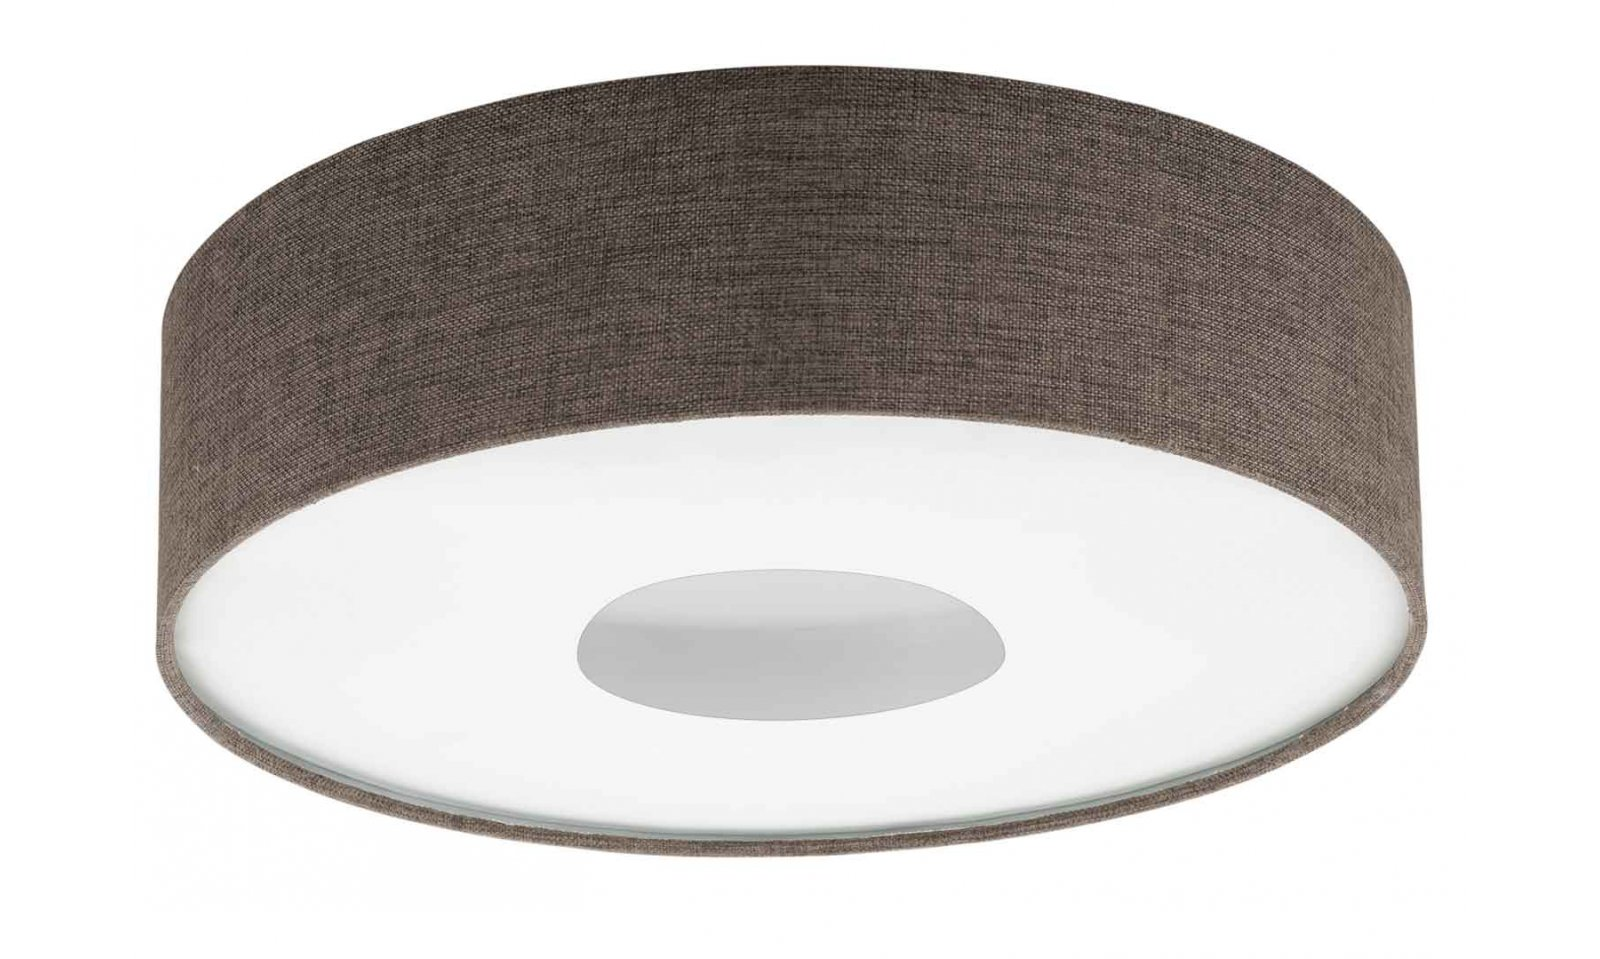 Eglo Plafoniere Led : Eglo romao 2 led ceiling lamp in steel and brown fabric lampshade